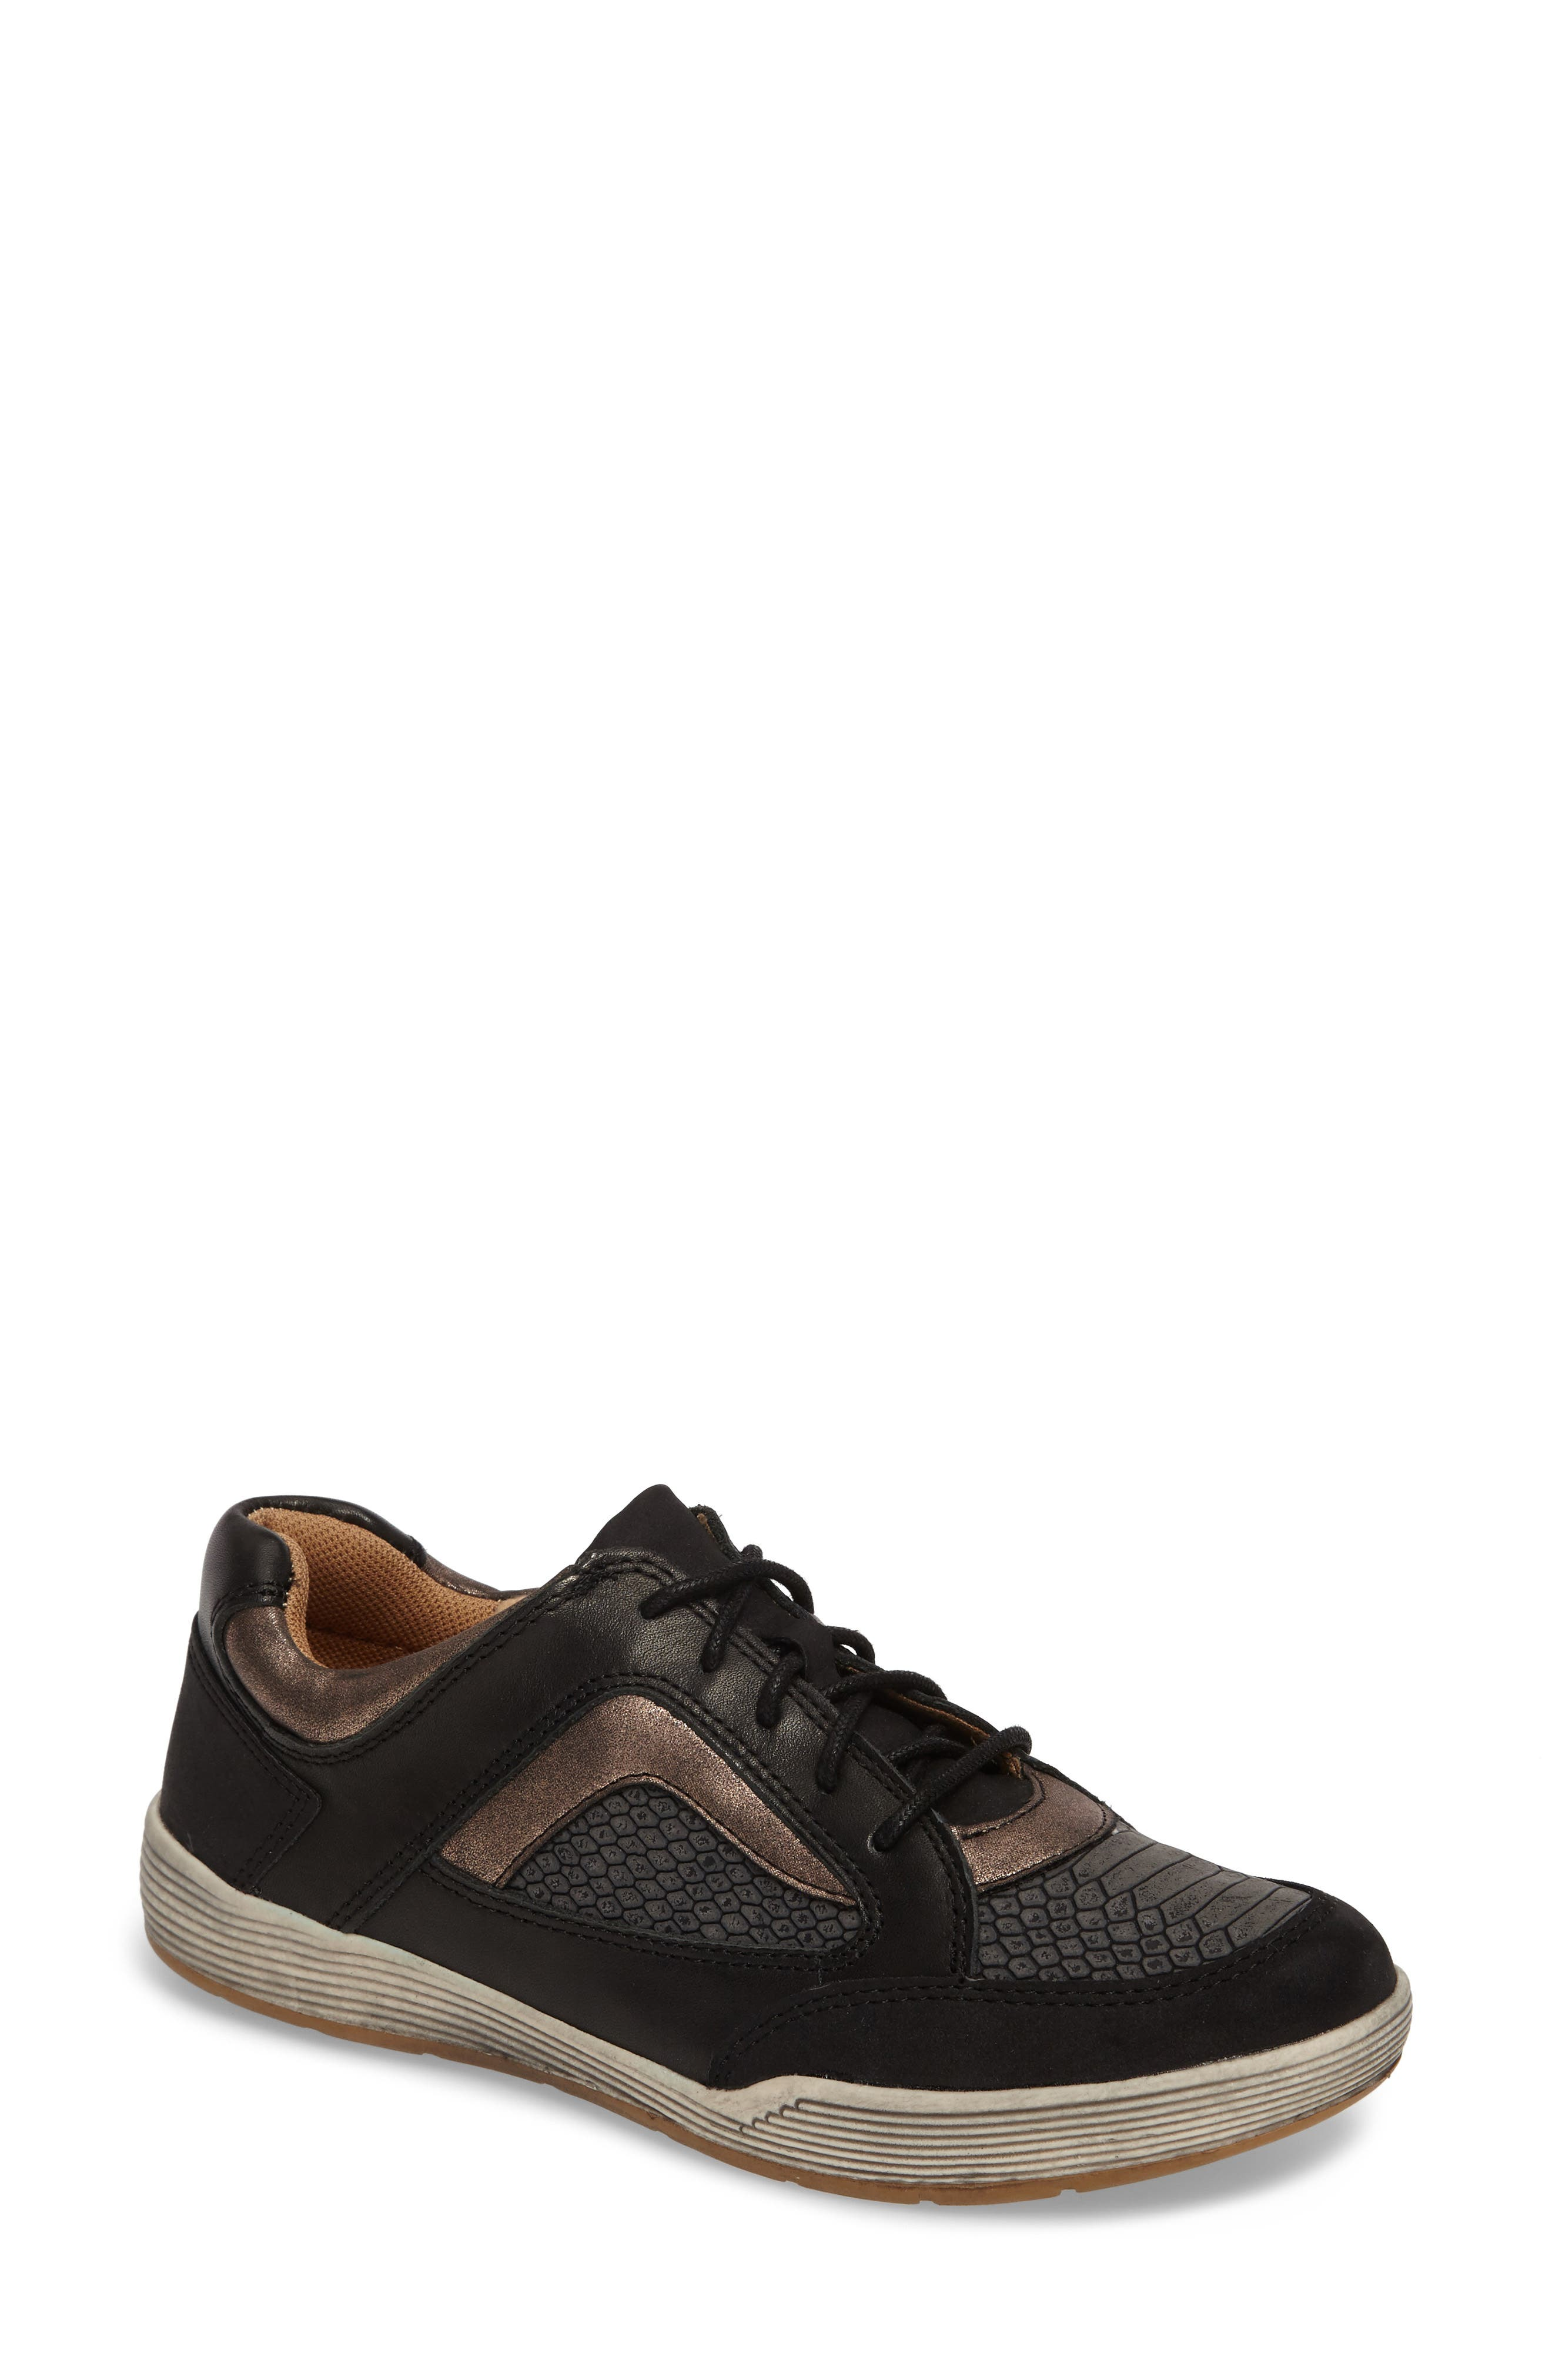 Lemont Snake Embossed Sneaker,                             Main thumbnail 1, color,                             BLACK SNAKE PRINT LEATHER